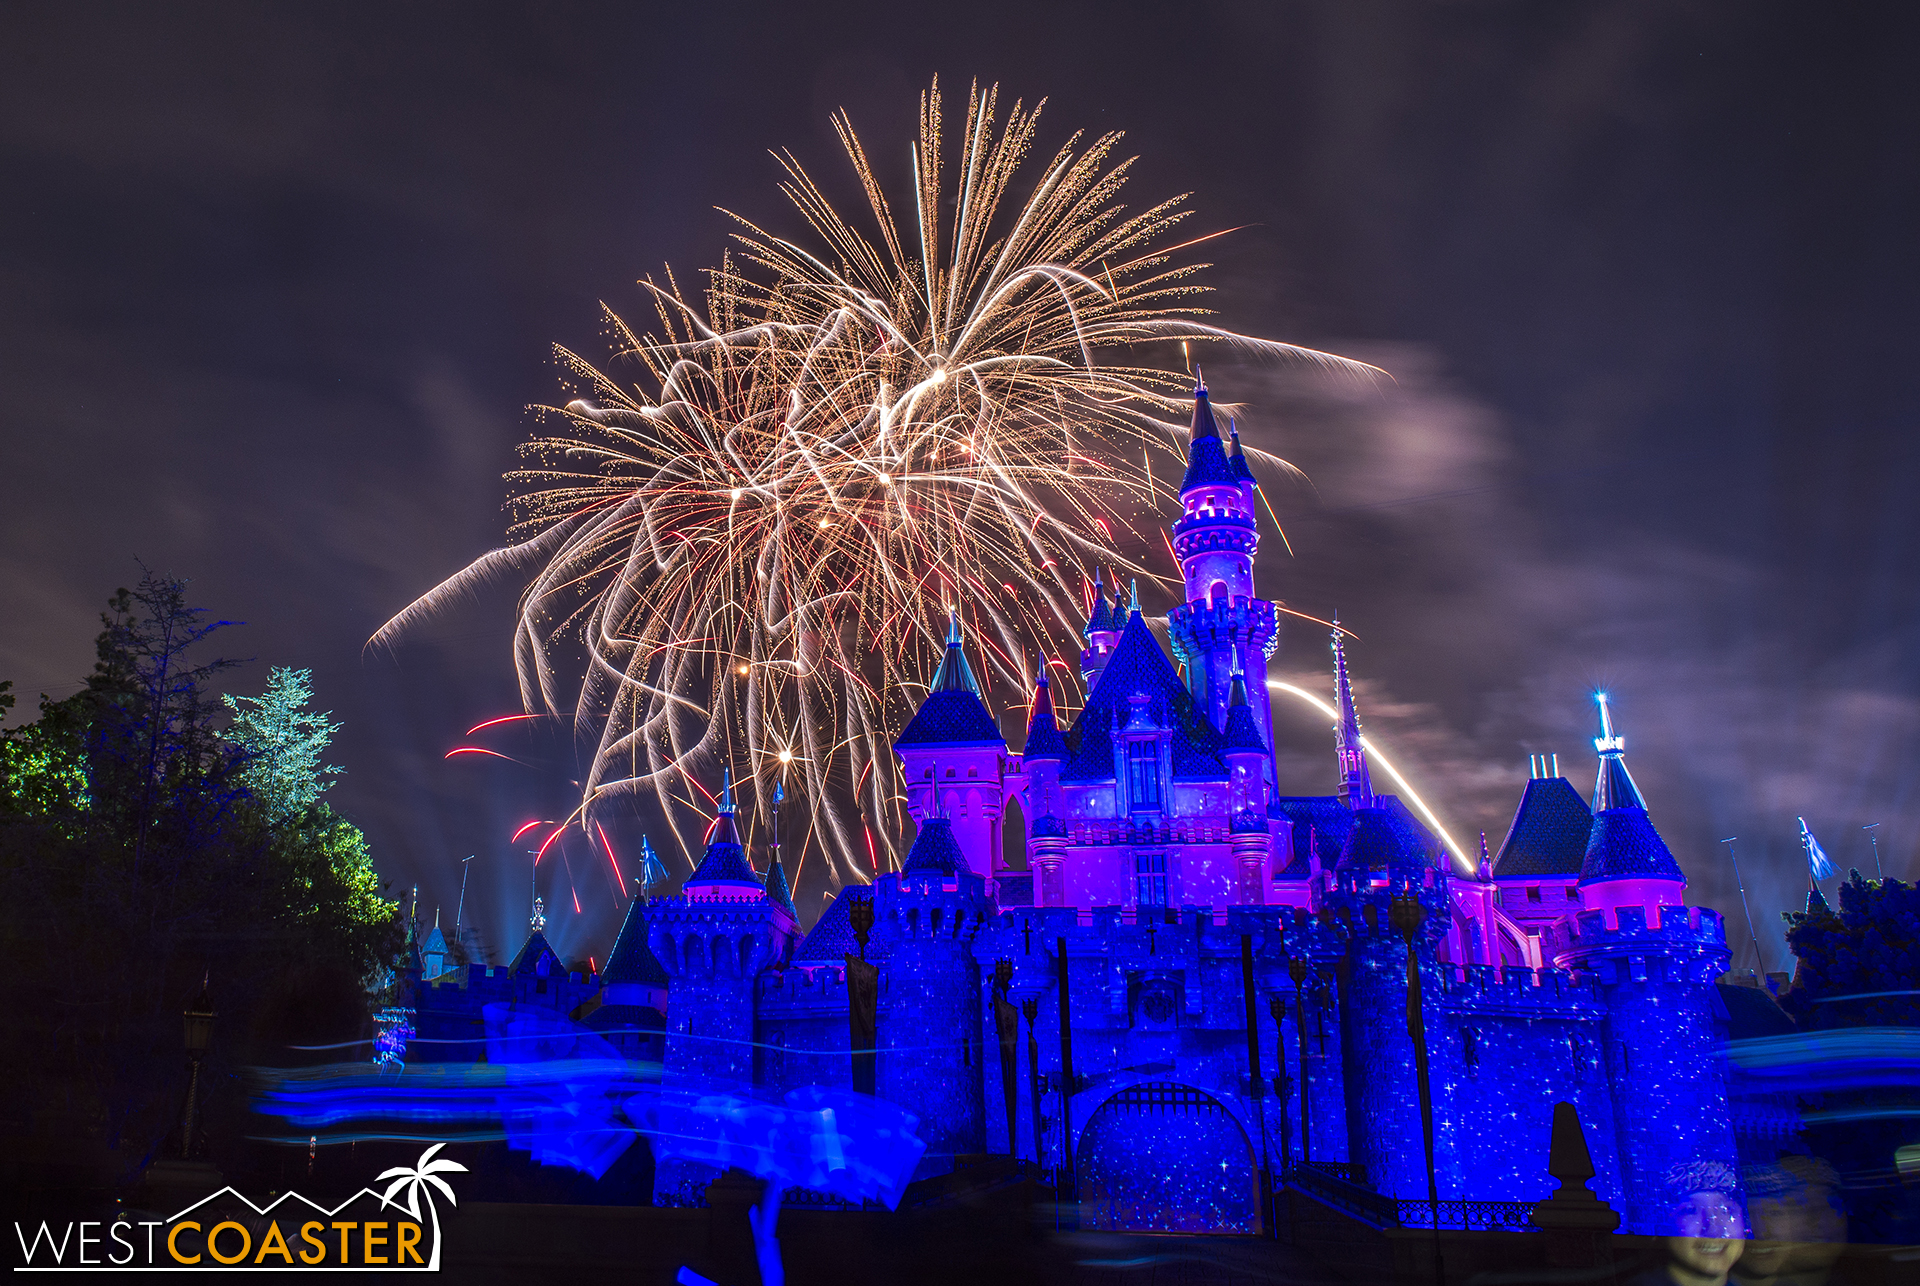 You can see the projections on the castle right from the get-go.